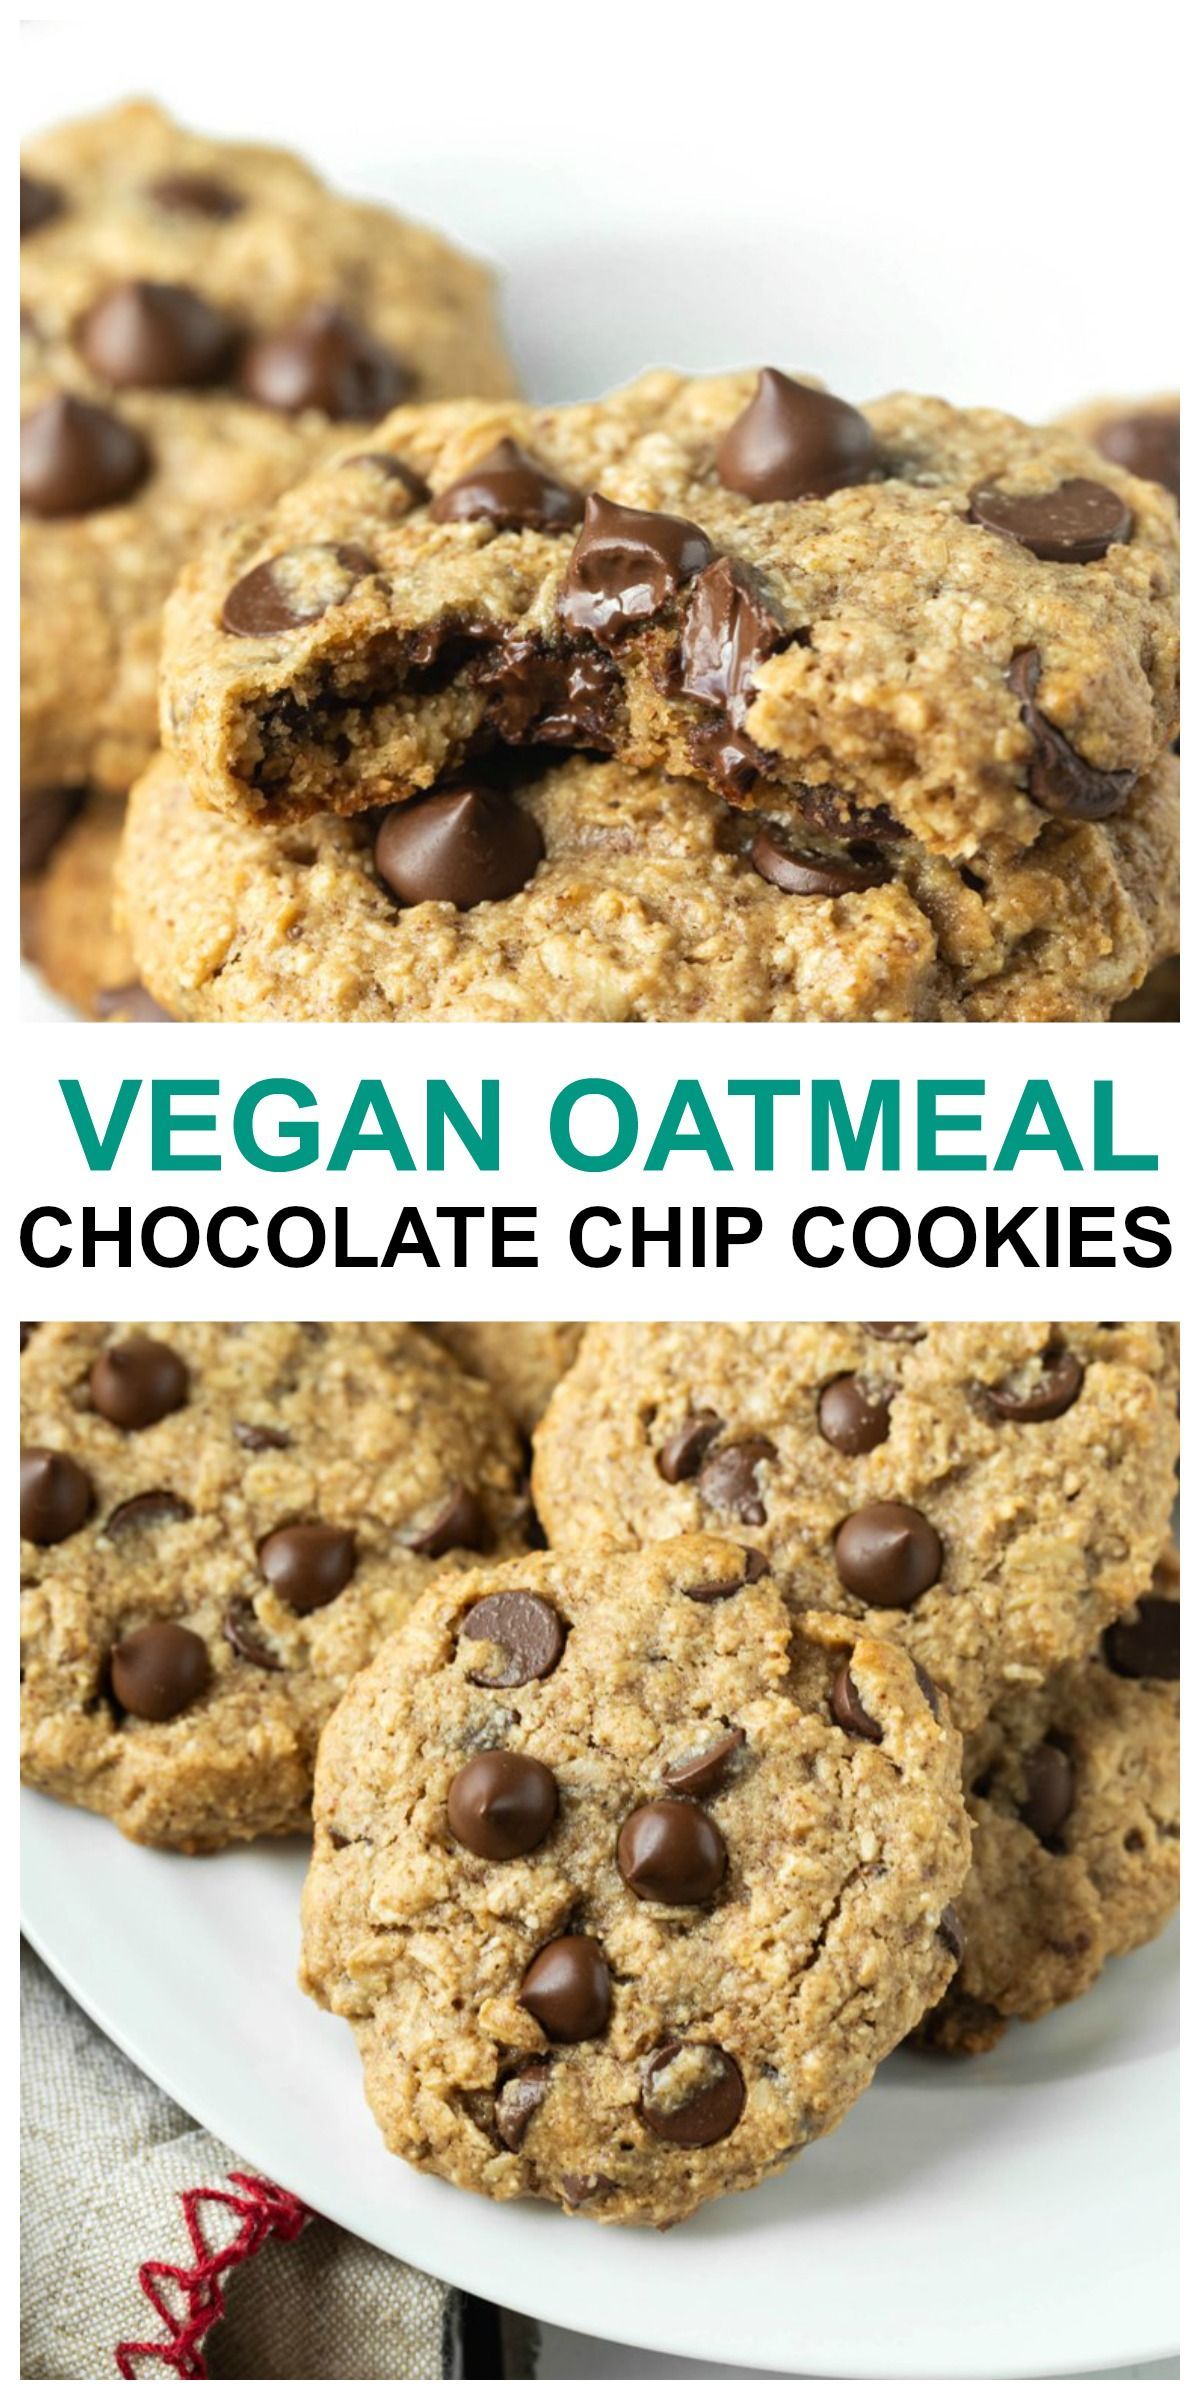 Vegan Oatmeal Chocolate Chip Cookies Gluten Free Recipe In 2020 Oatmeal Chocolate Chip Cookies Vegan Oatmeal Chocolate Chip Cookies Gluten Free Oatmeal Chocolate Chip Cookies